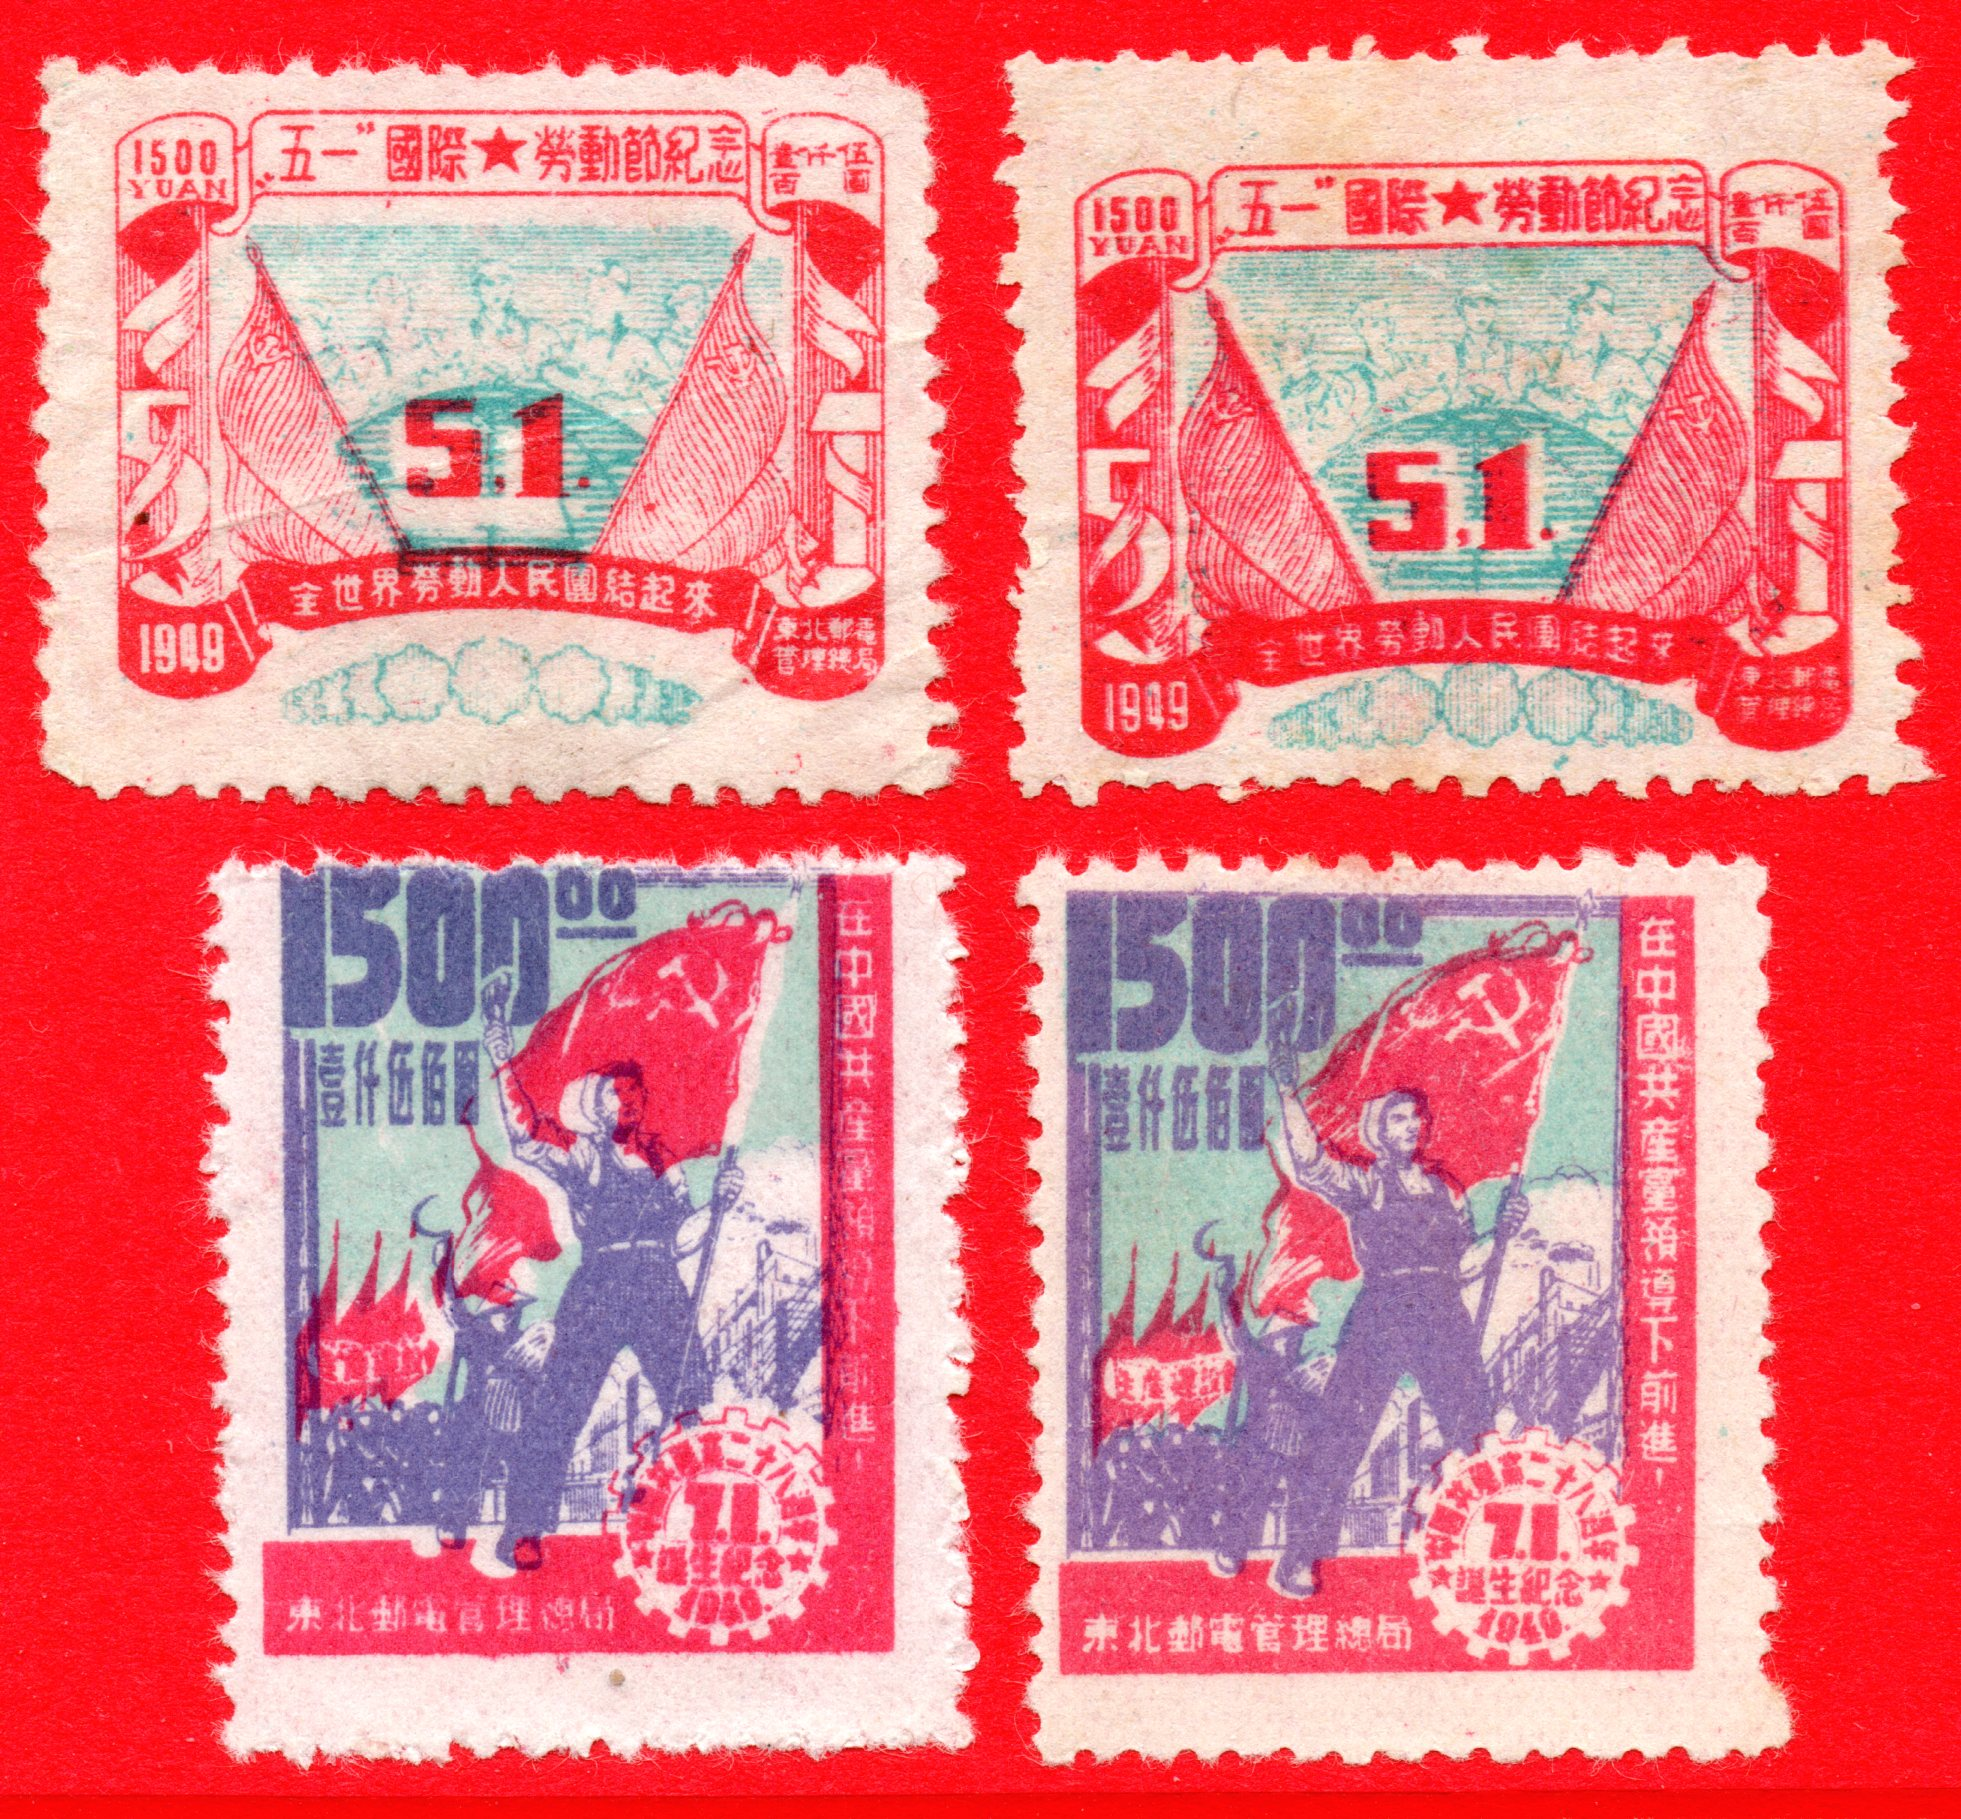 CHINA 1949 $1500 Labour Day & $1500 28th Anniv MINT with RED SHIFT VARIETIES